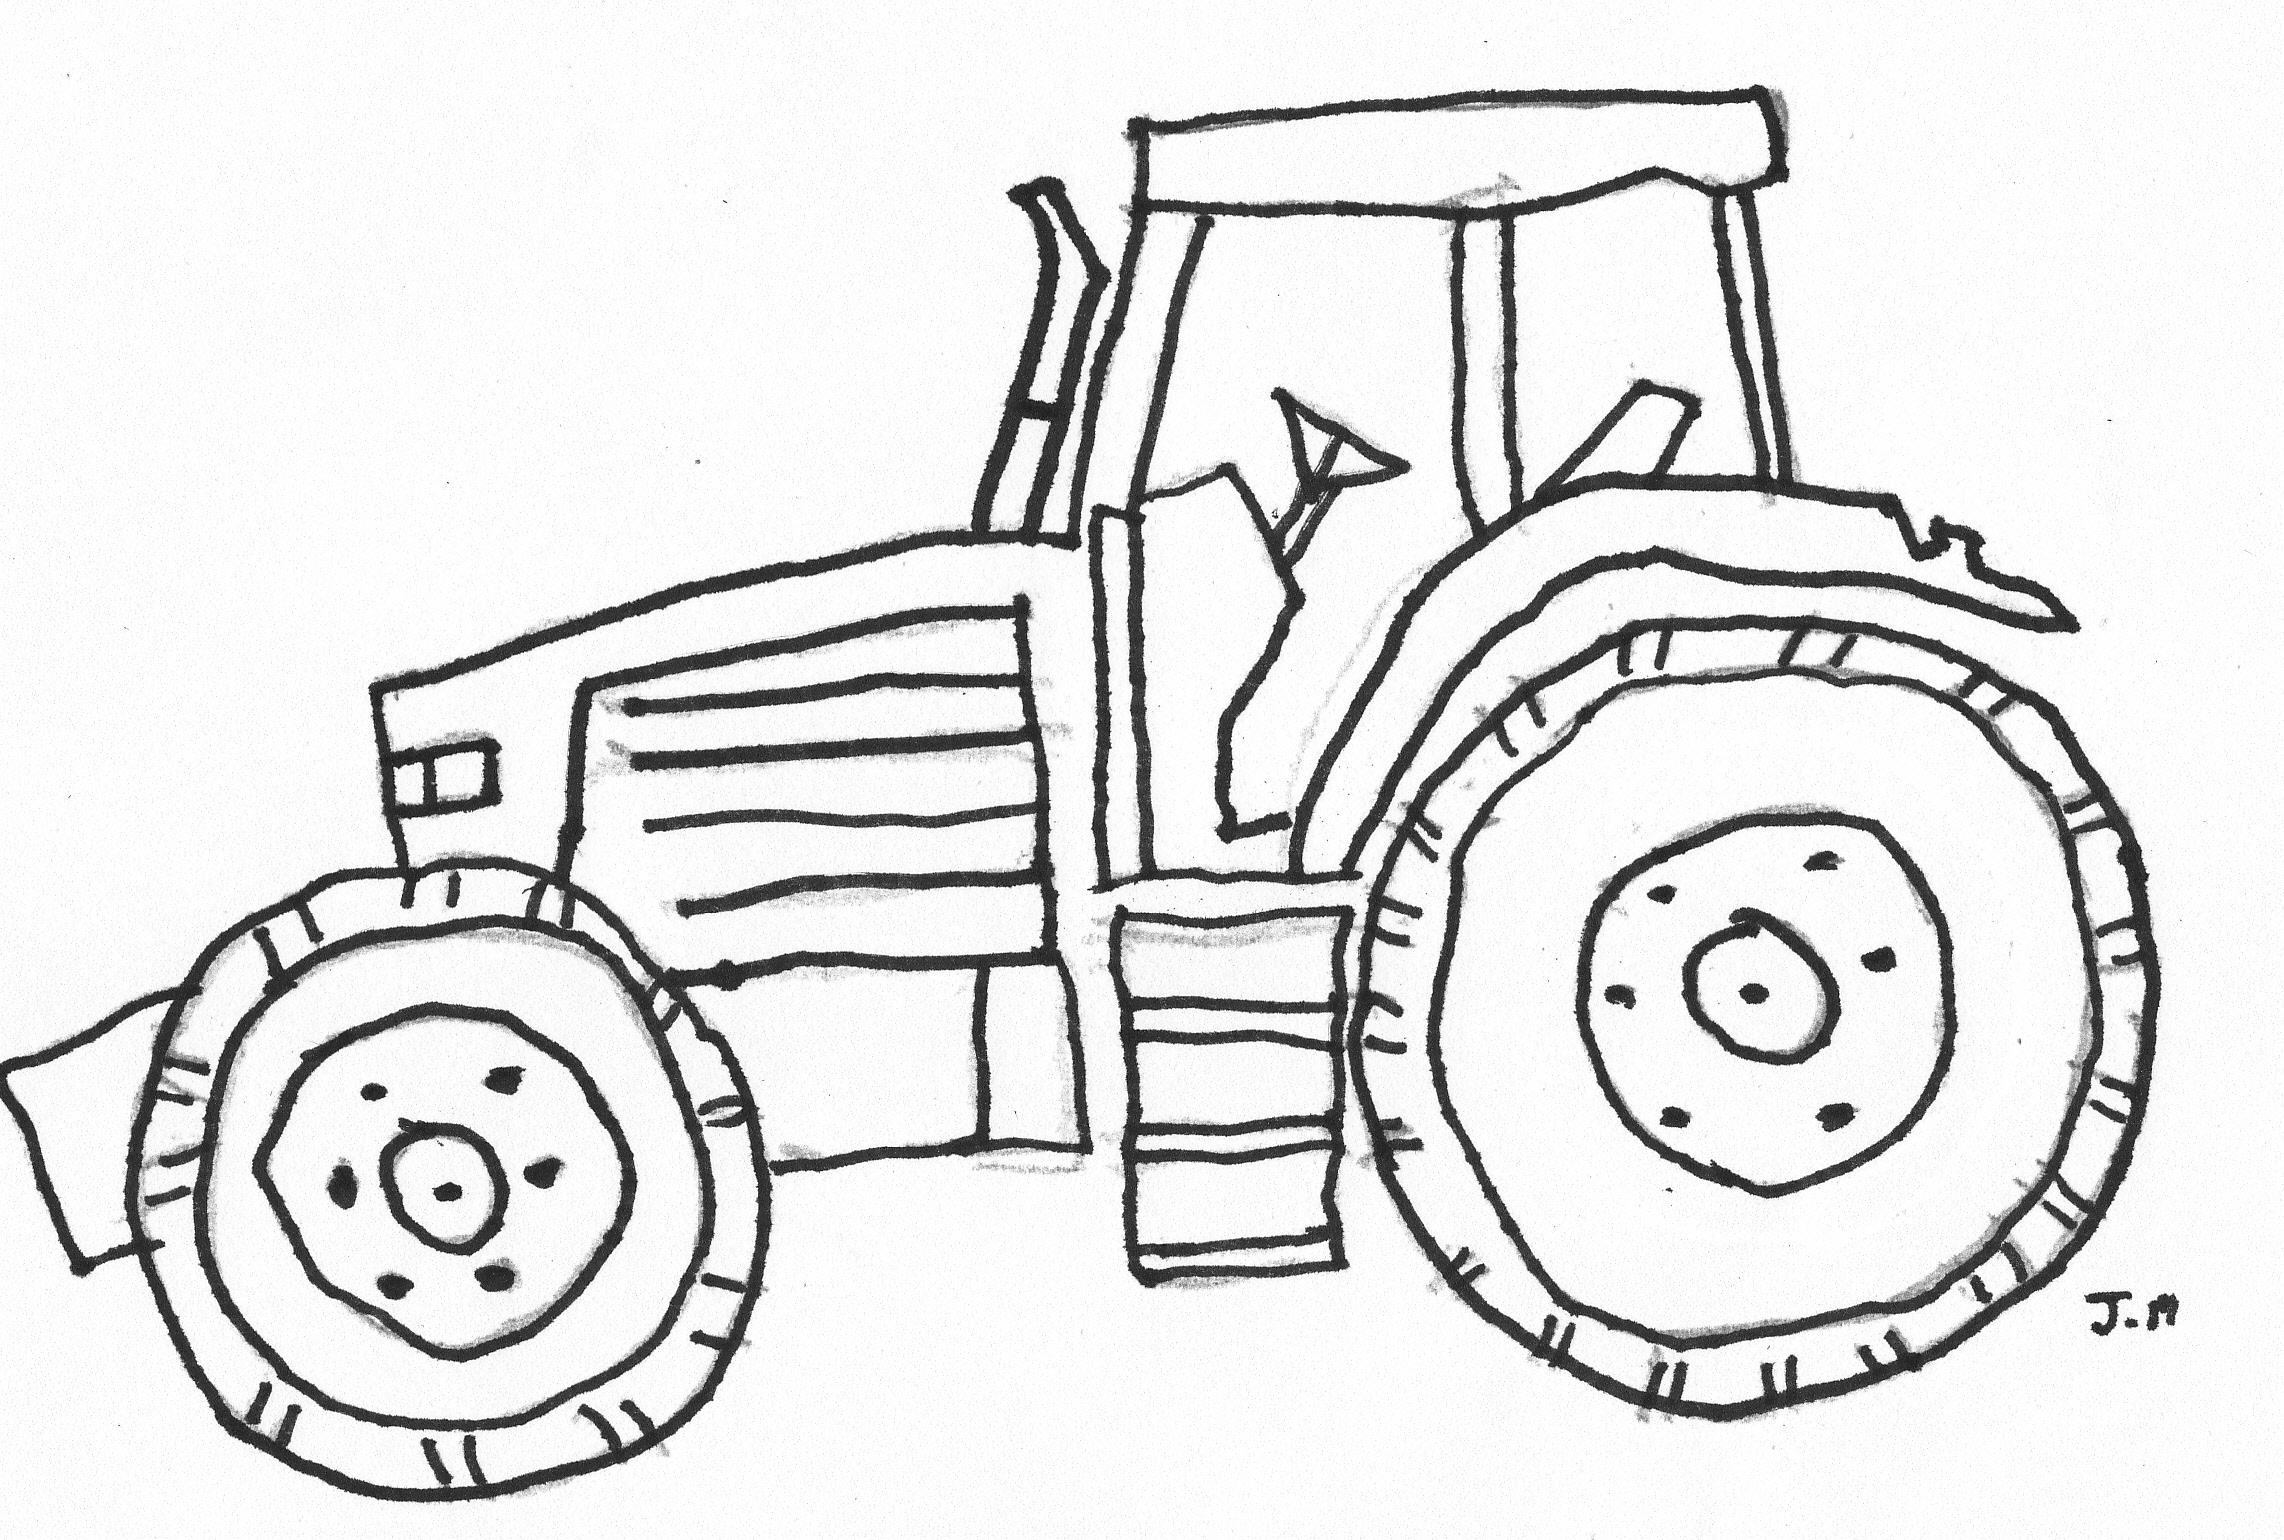 tractor coloring sheets tractor with a plow coloring pages coloring pages for kids sheets tractor coloring